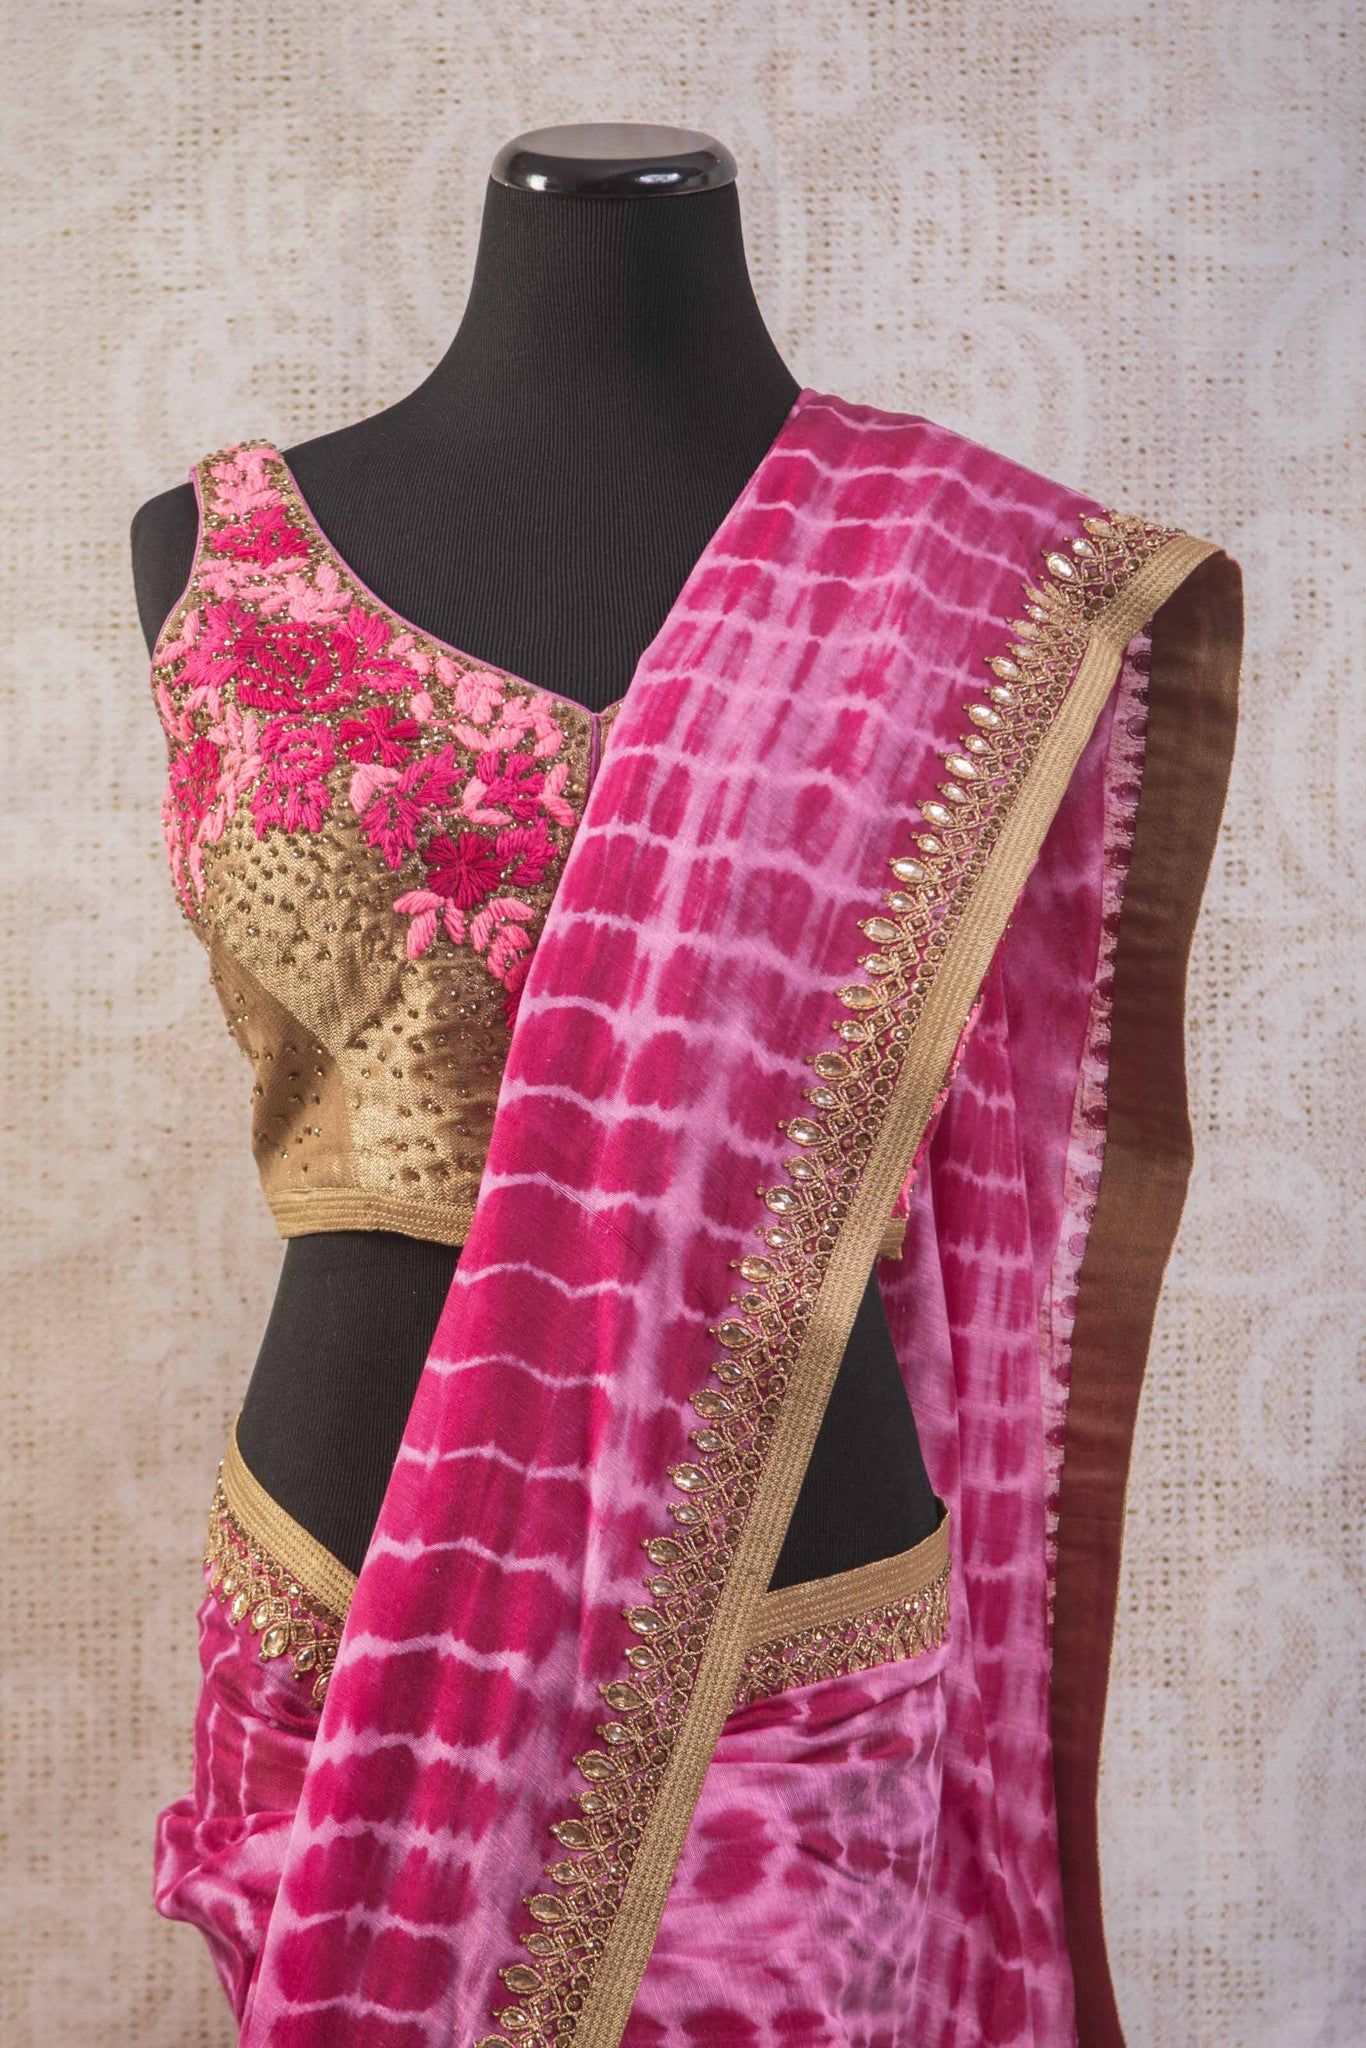 90b806 Tie dye saree with an embroidered blouse and border. The lovely pink Indian sari online at Pure Elegance is wonderfully versatile and will be an evergreen addition to your ethnic closet.